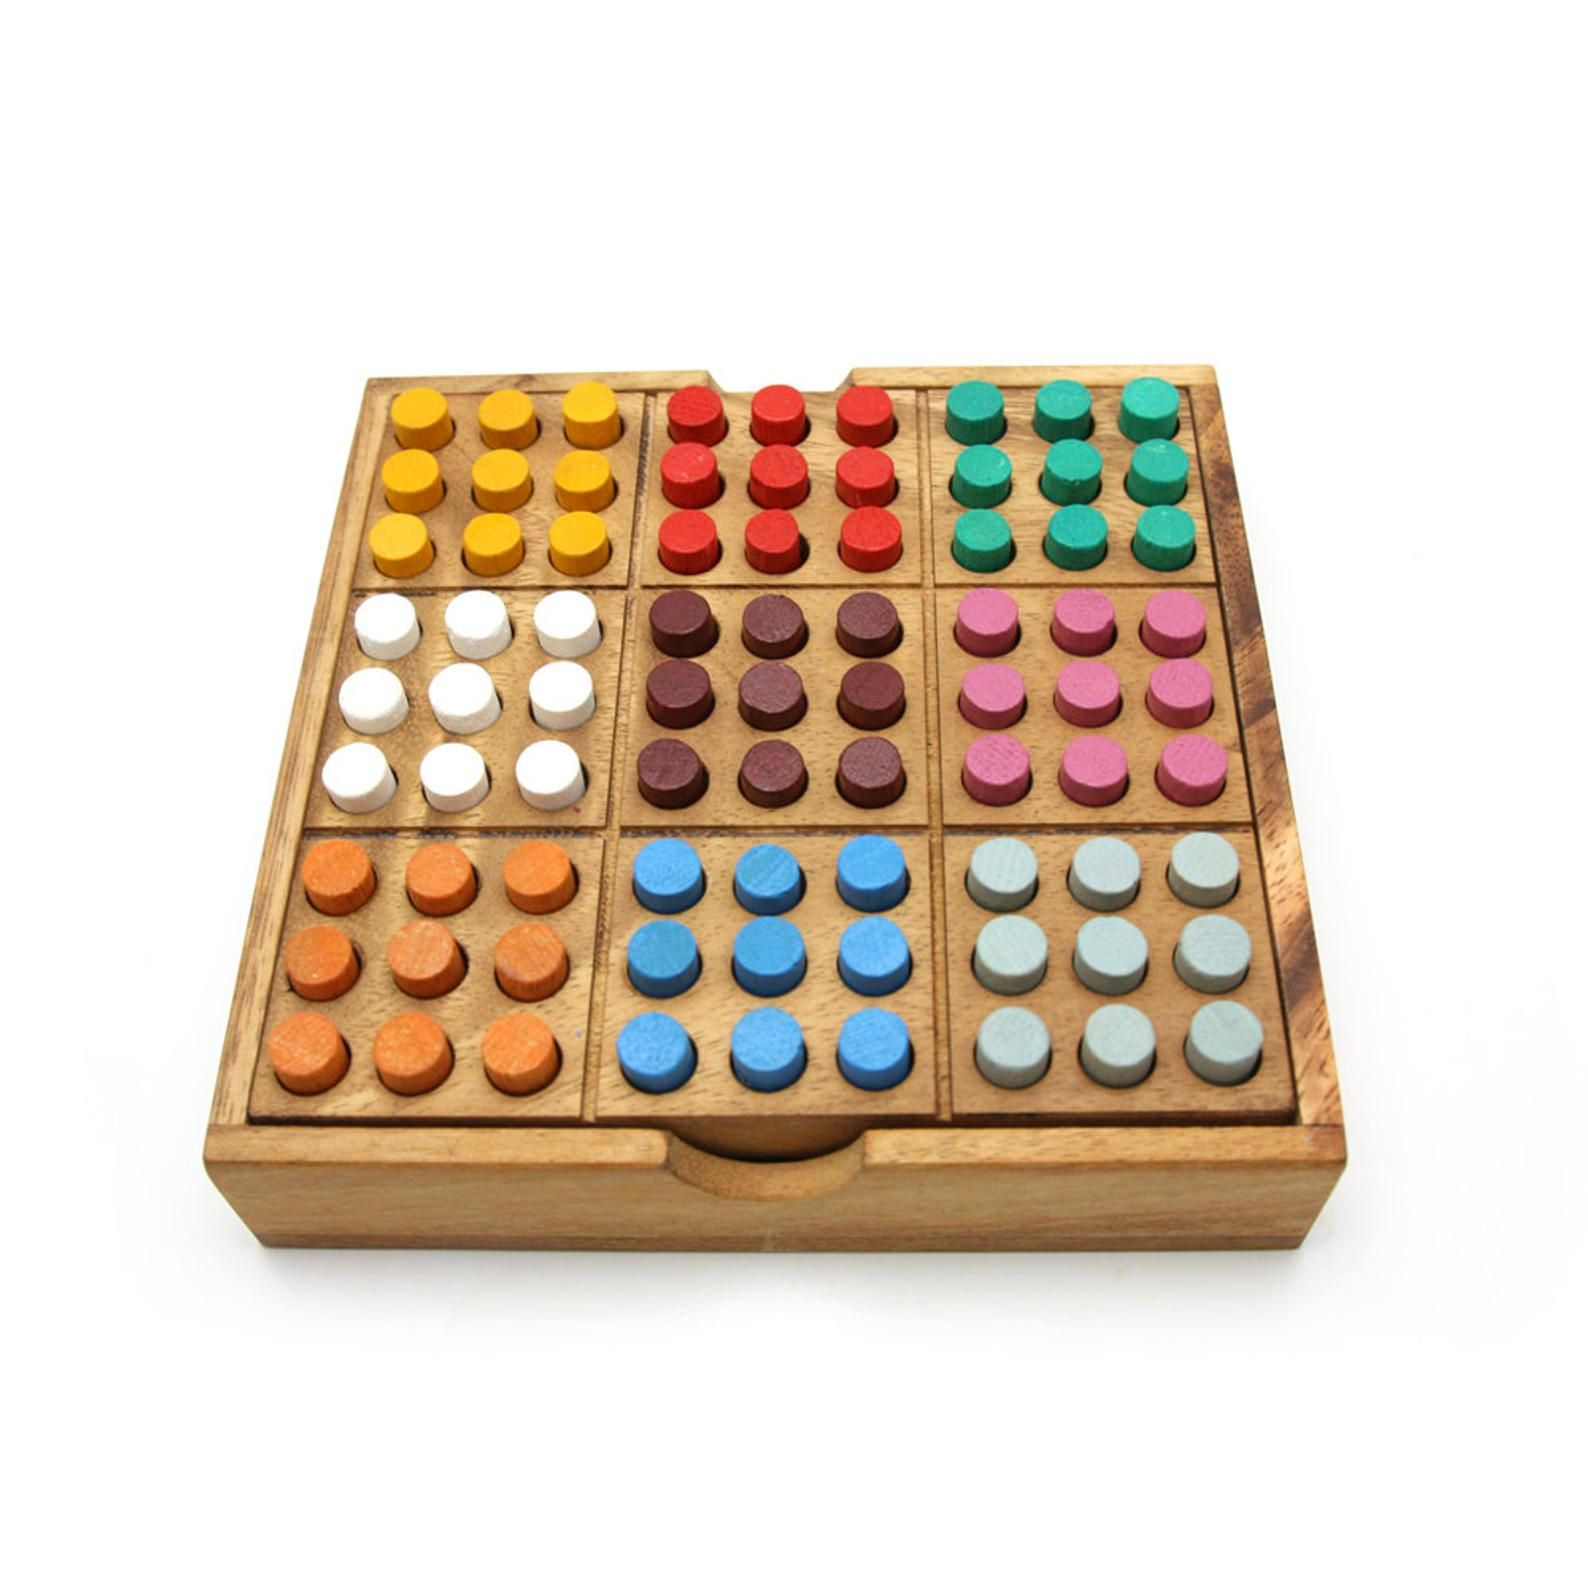 Colored Sudoku wood game, sudoku wooden board game